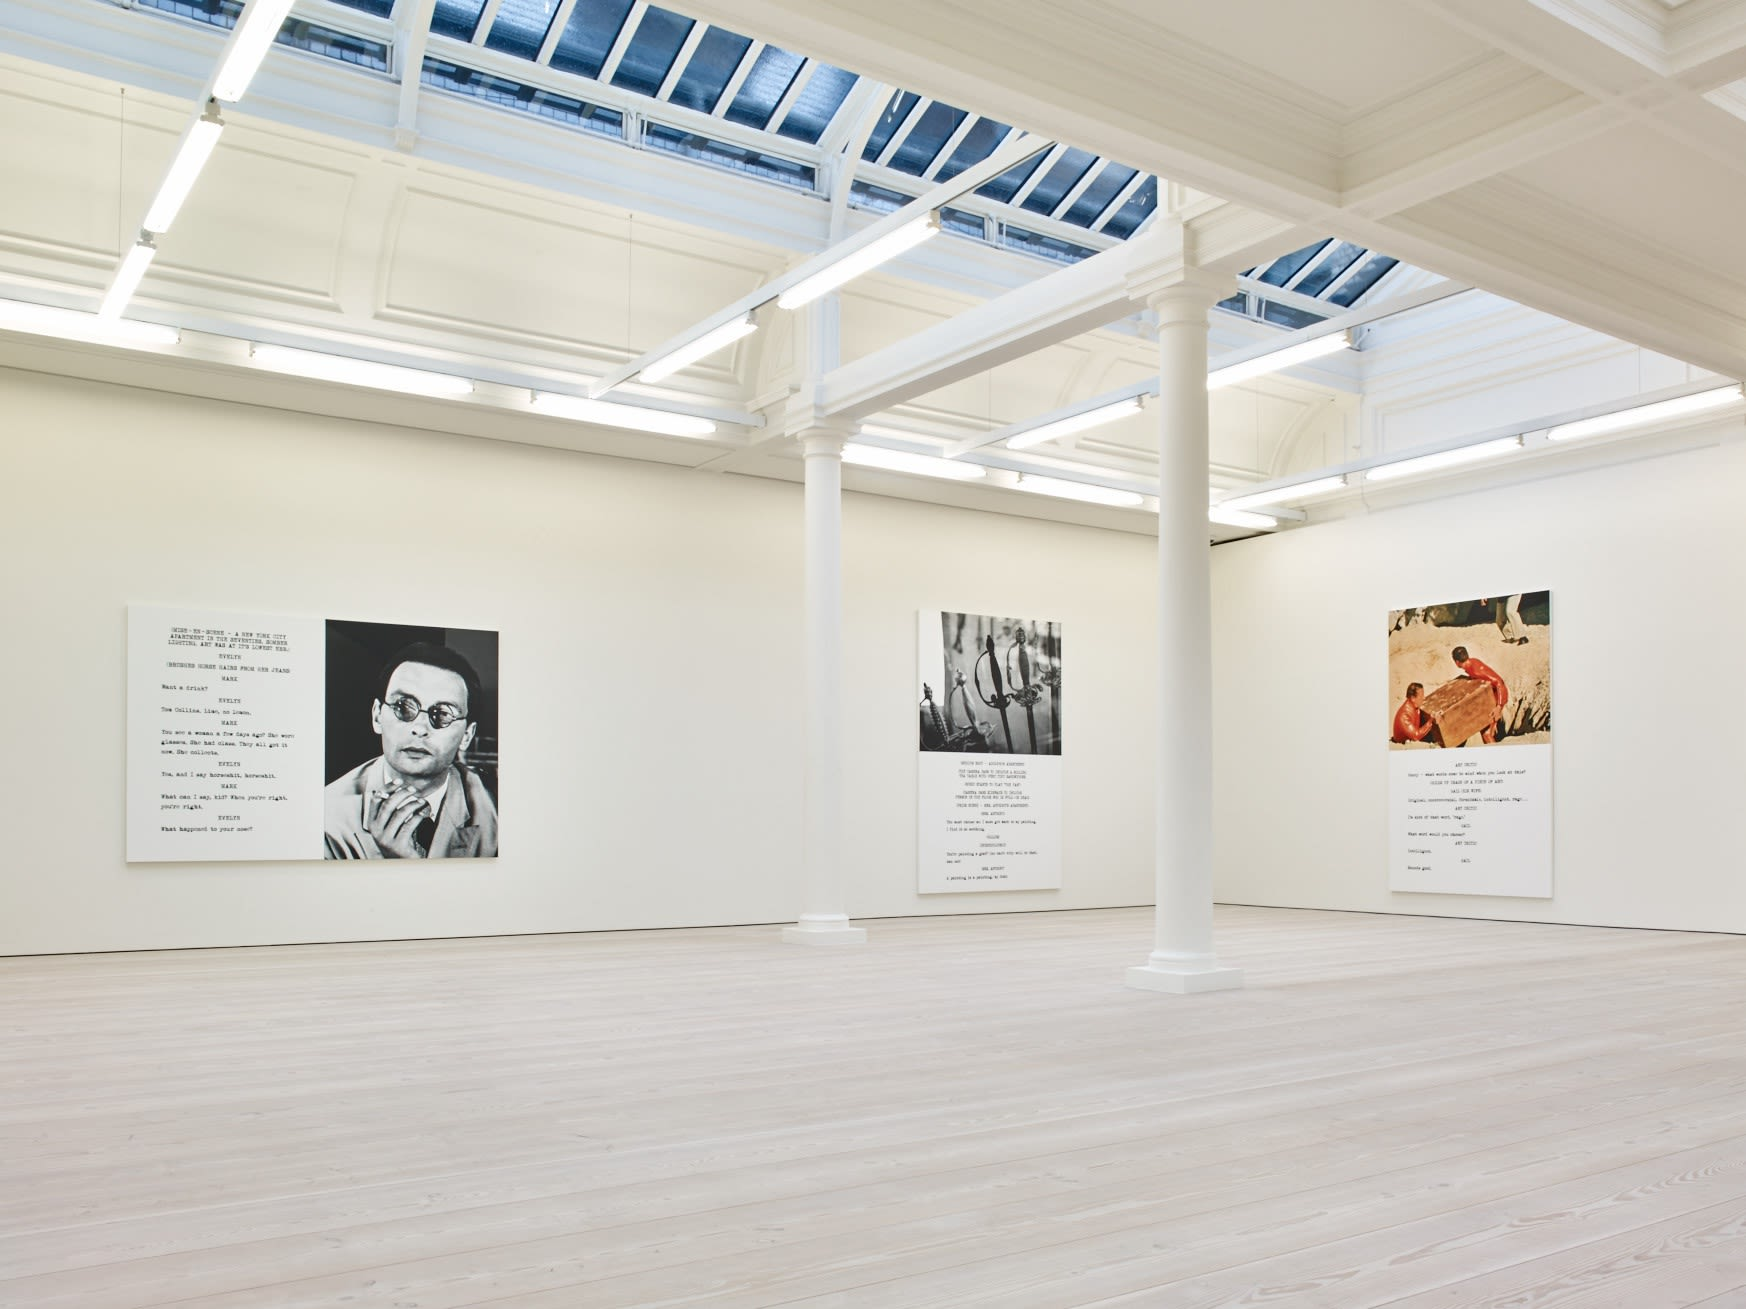 In a large white space with columns and a long skylight, 3 large paintings hang. Each are roughly half image and half text, which is in the format of a film script.